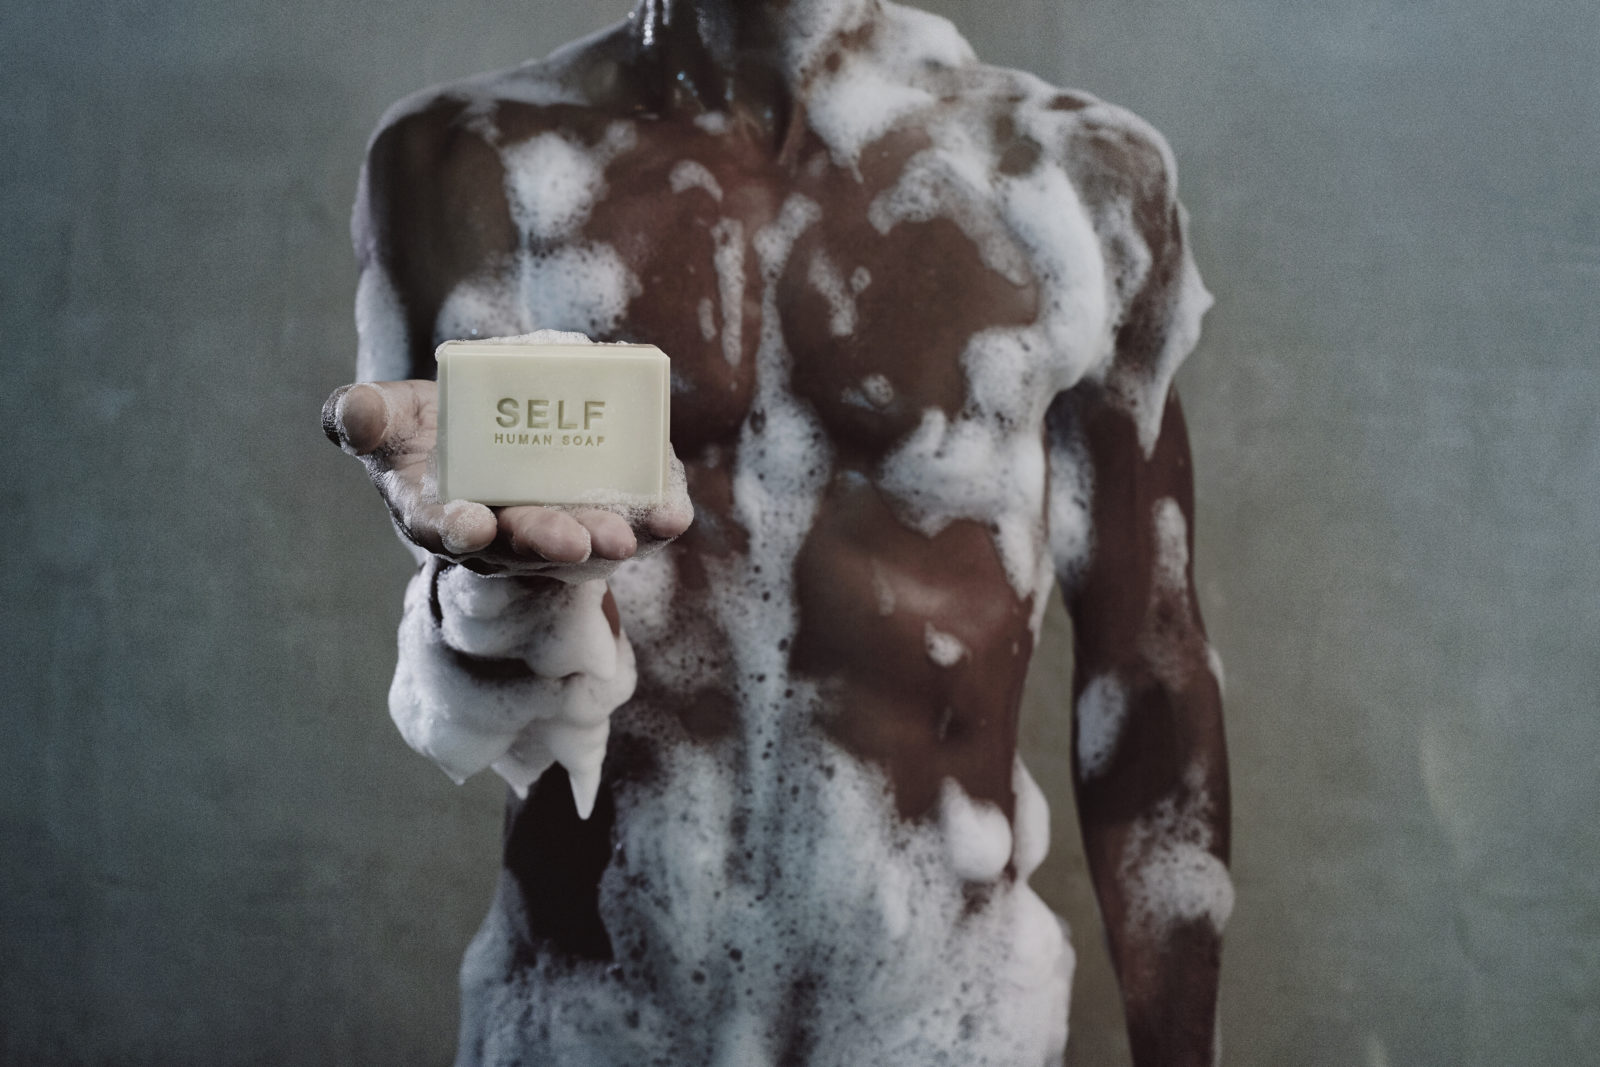 A man, lathered up with suds, holds a bar of soap in front of him